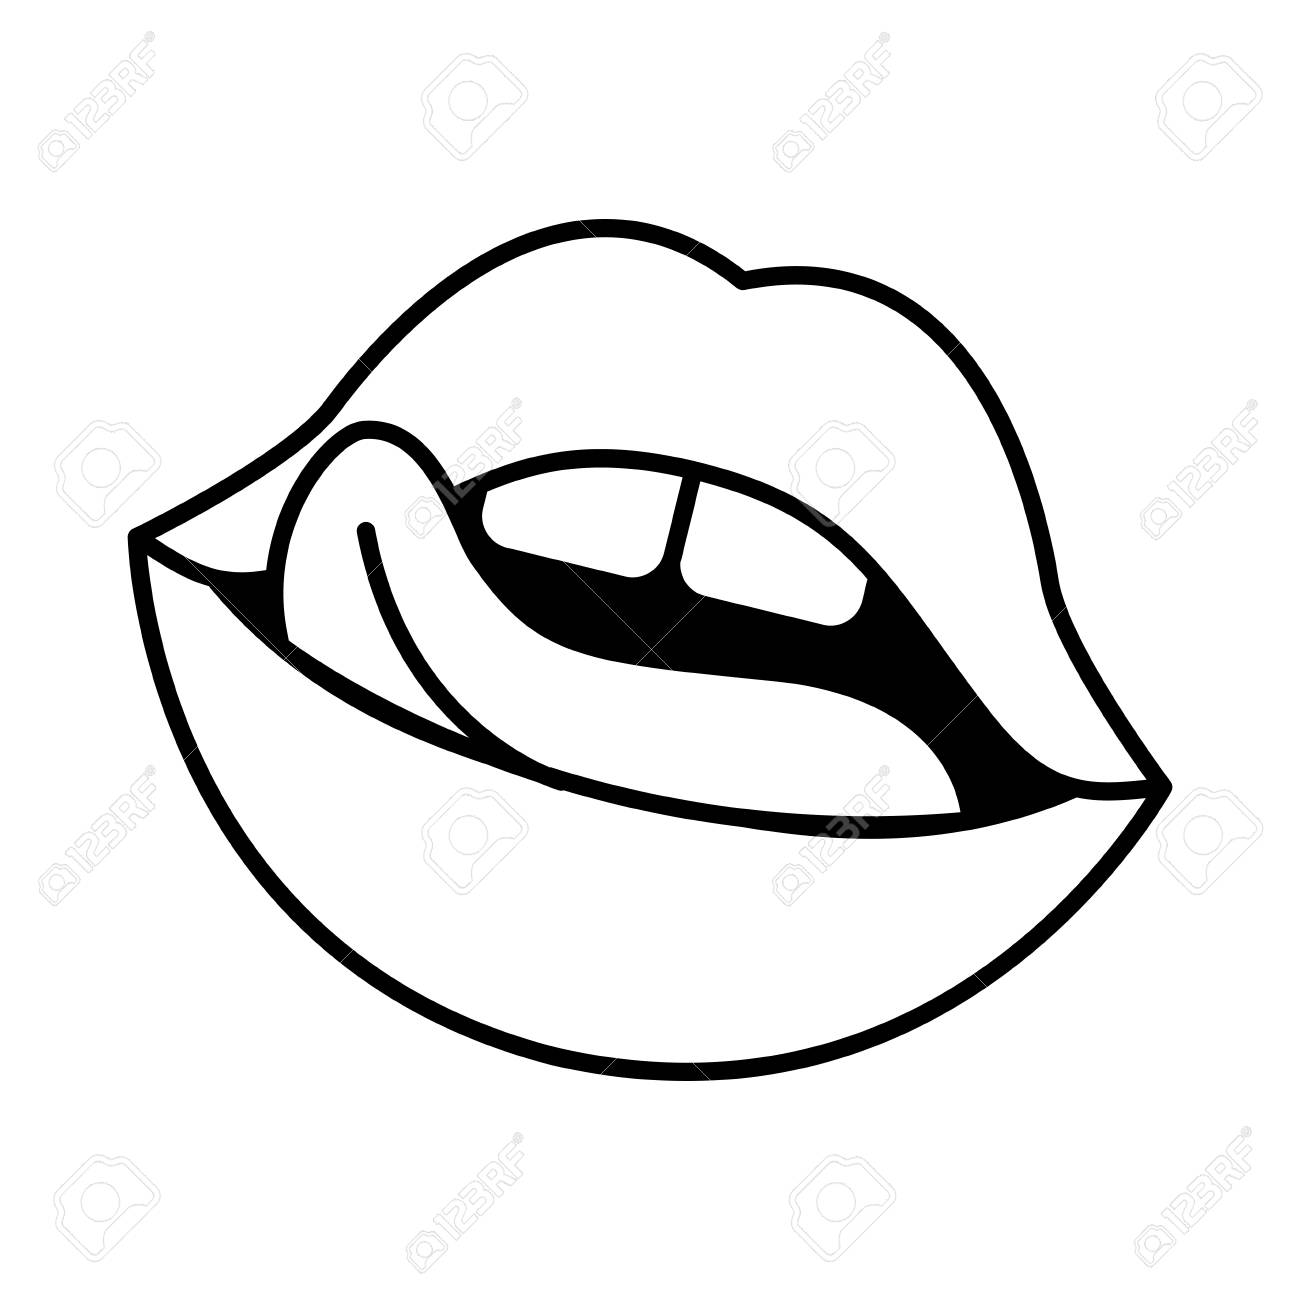 Mouth Icon Cartoon Black And White Stock Vector - Illustration of smile,  people: 149491979